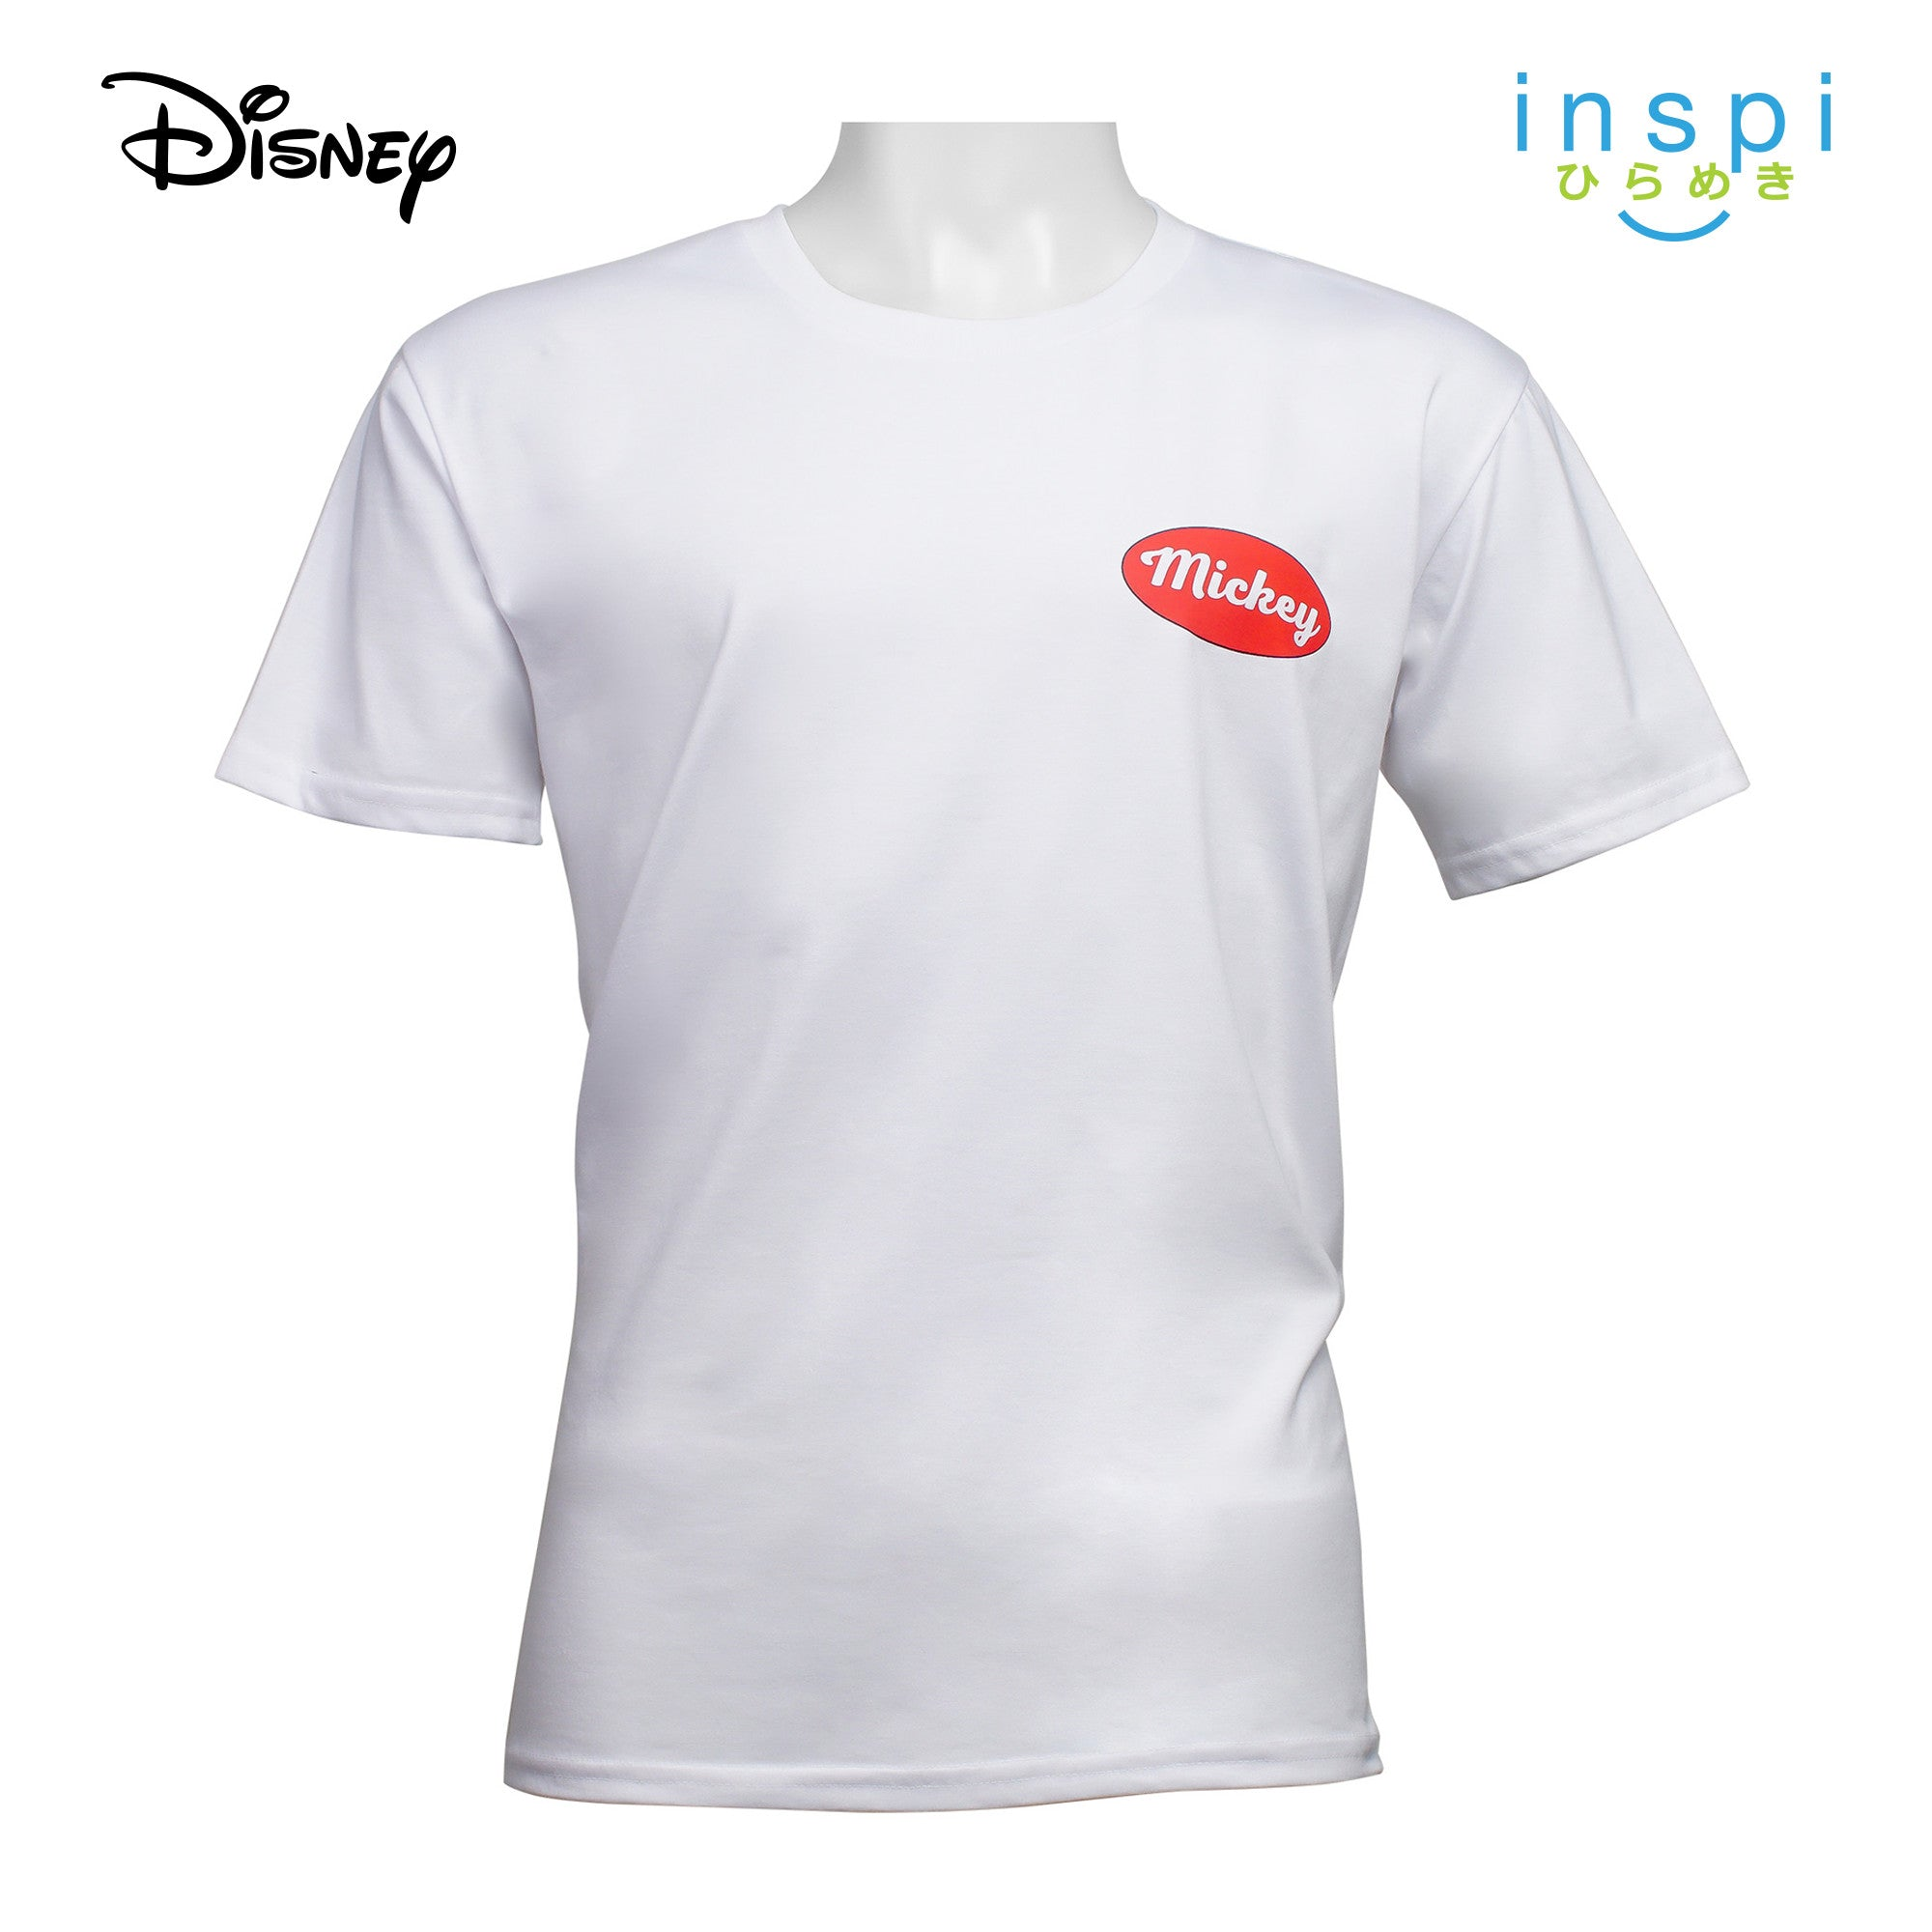 Disney Mickey Mouse Back Graphic Tshirt in White for Men Inspi Shirt